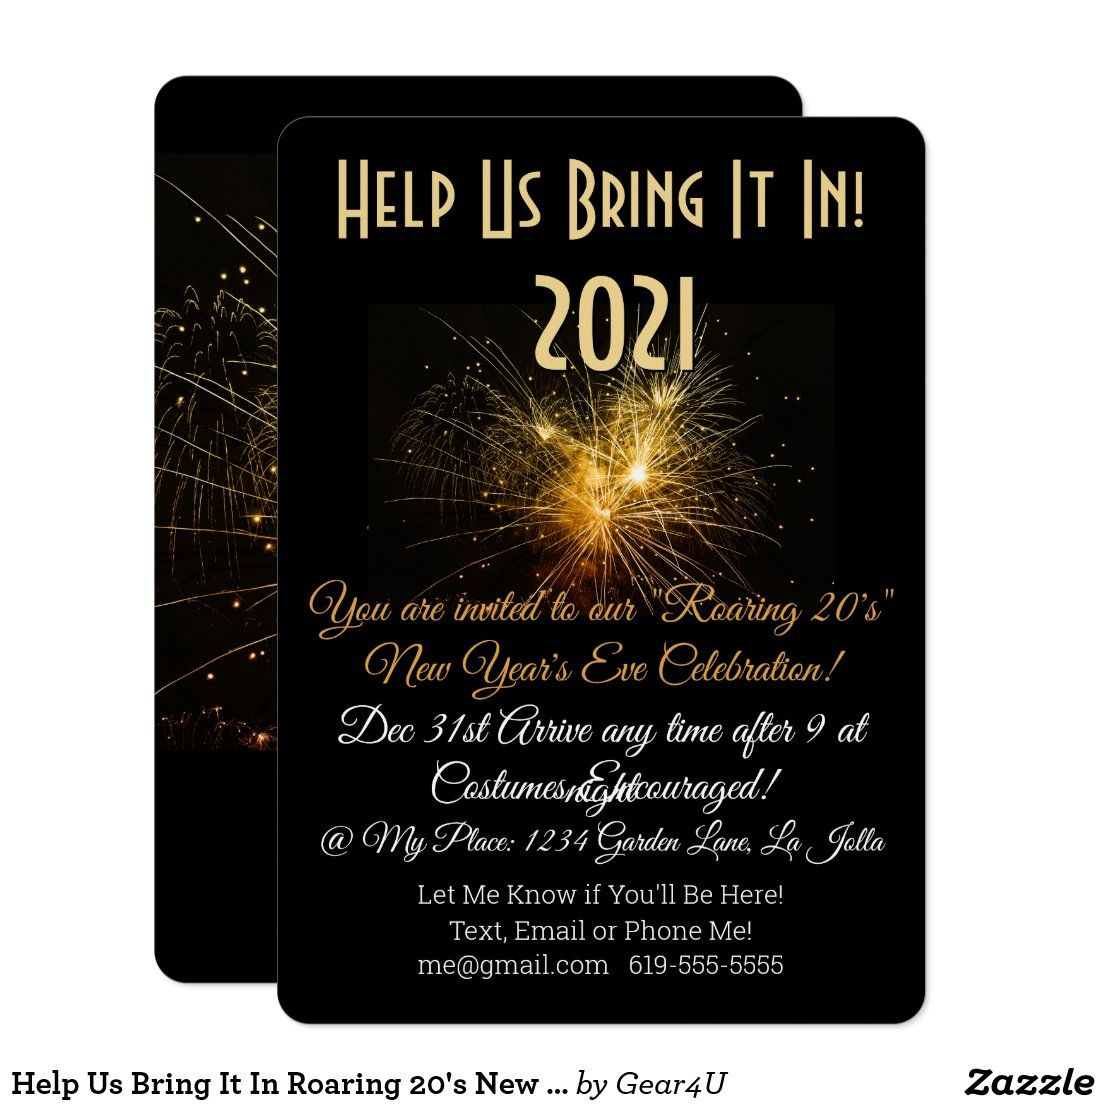 Help Us Bring It In Roaring 20 S New Year Invitation Zazzle Com New Years Eve Invitations Invitations New Year S Eve Celebrations